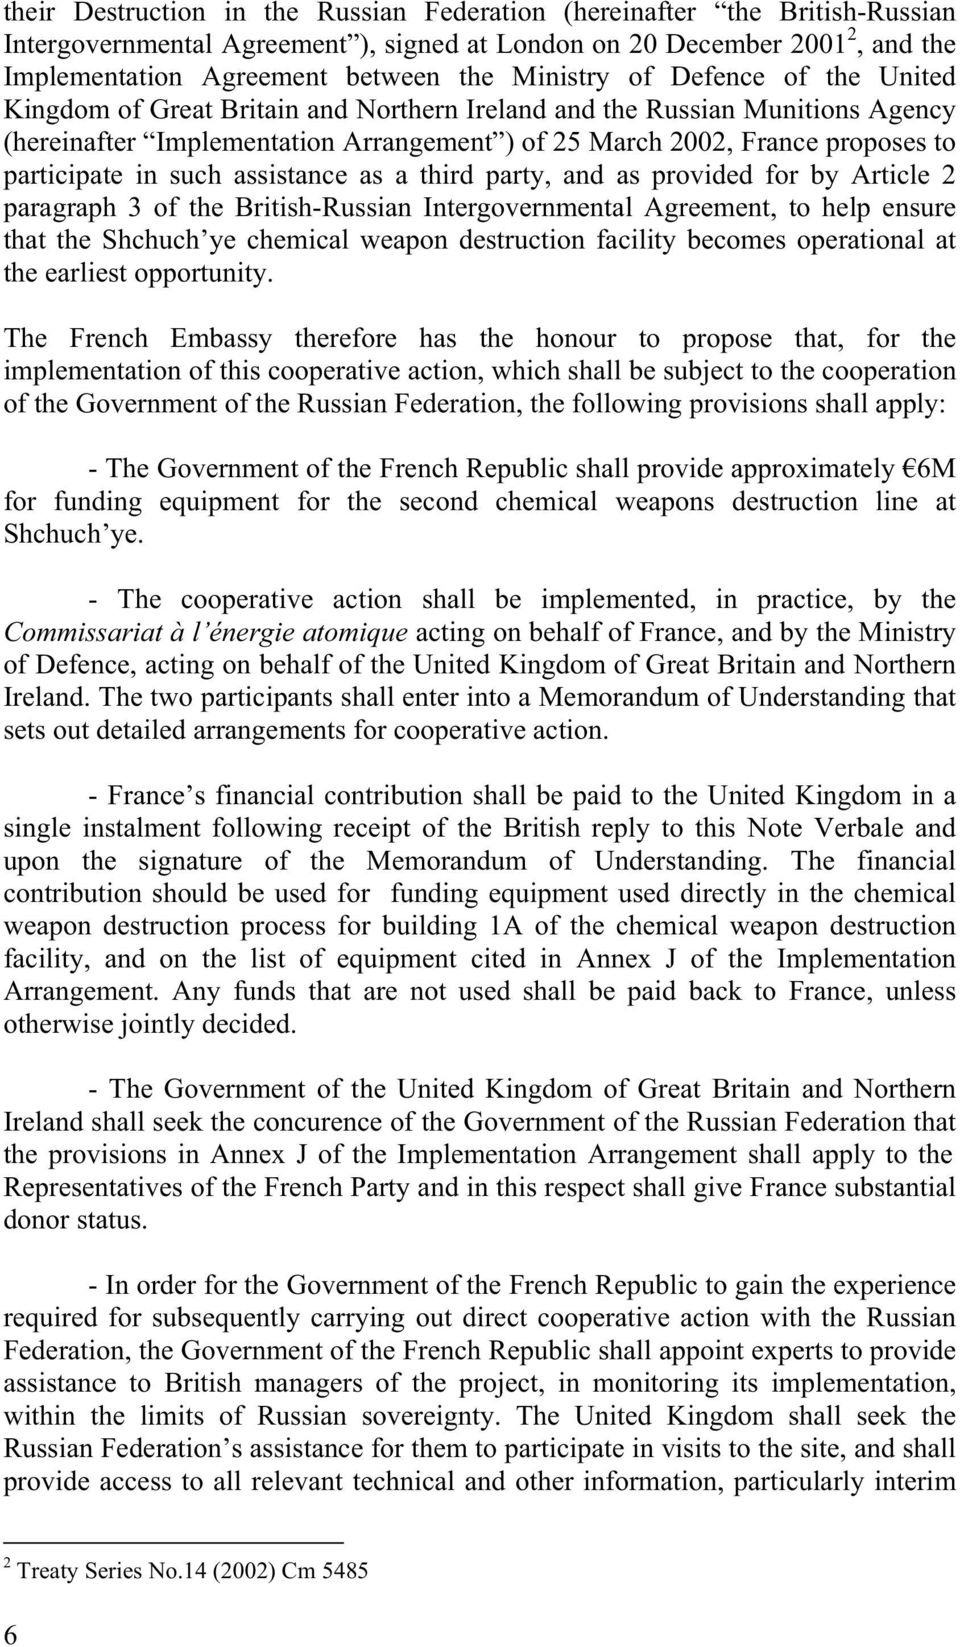 participate in such assistance as a third party, and as provided for by Article 2 paragraph 3 of the British-Russian Intergovernmental Agreement, to help ensure that the Shchuch ye chemical weapon